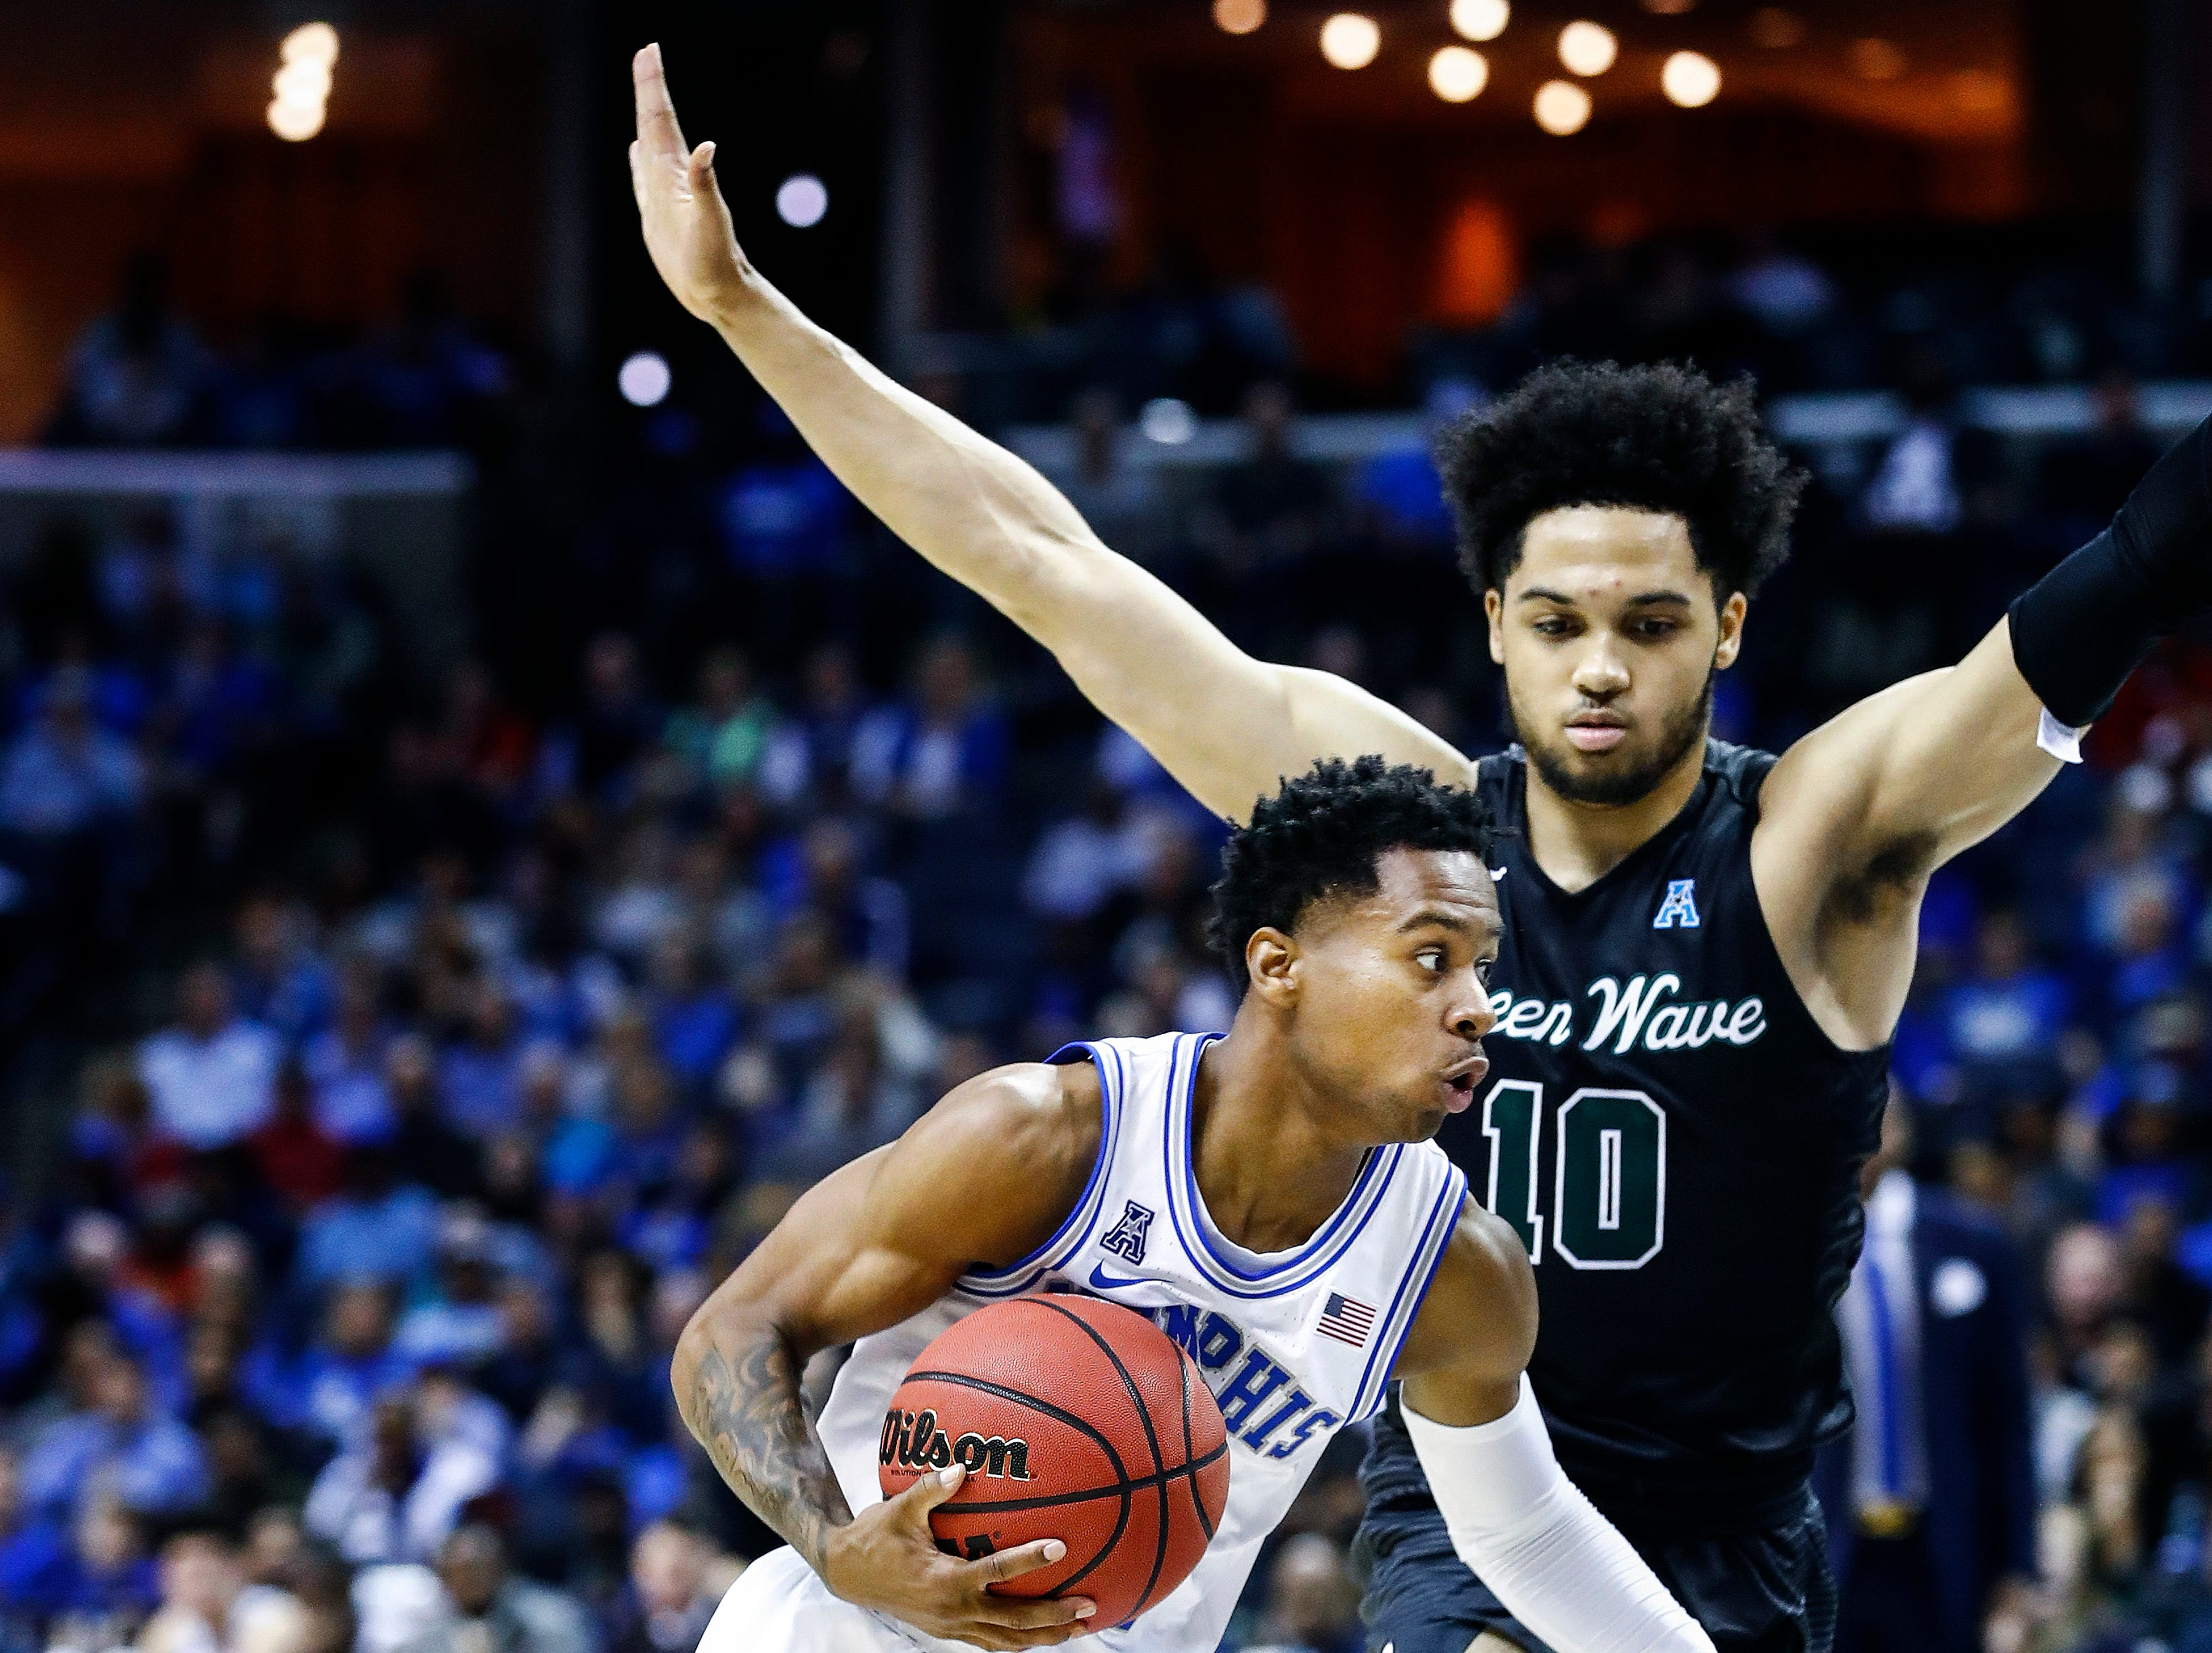 Memphis guard Tyler Harris (left) drives the lane against Tulane defender Caleb Daniels (right) during action of their first round AAC Tournament game at the  FedExForum, Thursday, March 14, 2019.